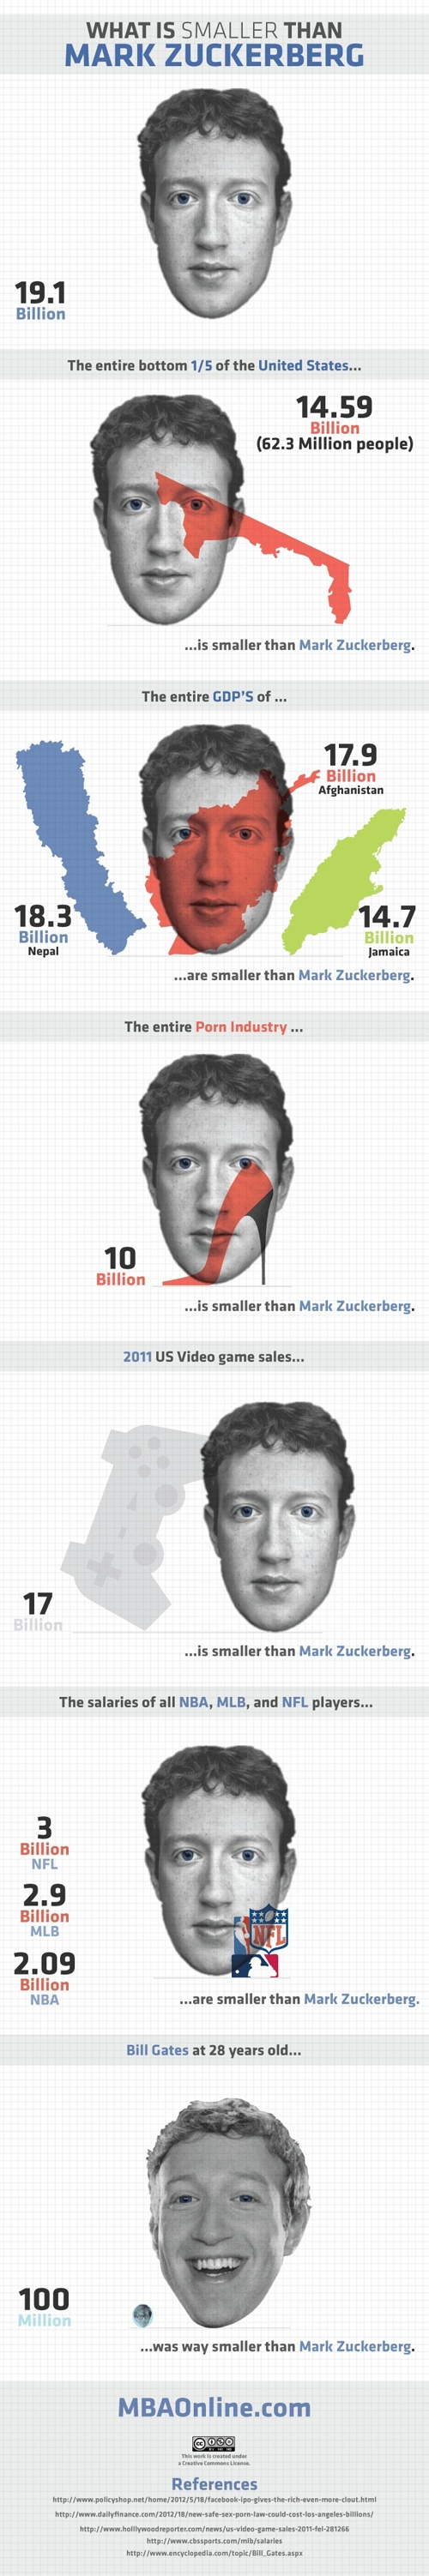 What Is Smaller Than Mark Zuckerberg - http://www.bestinfographic.co.uk